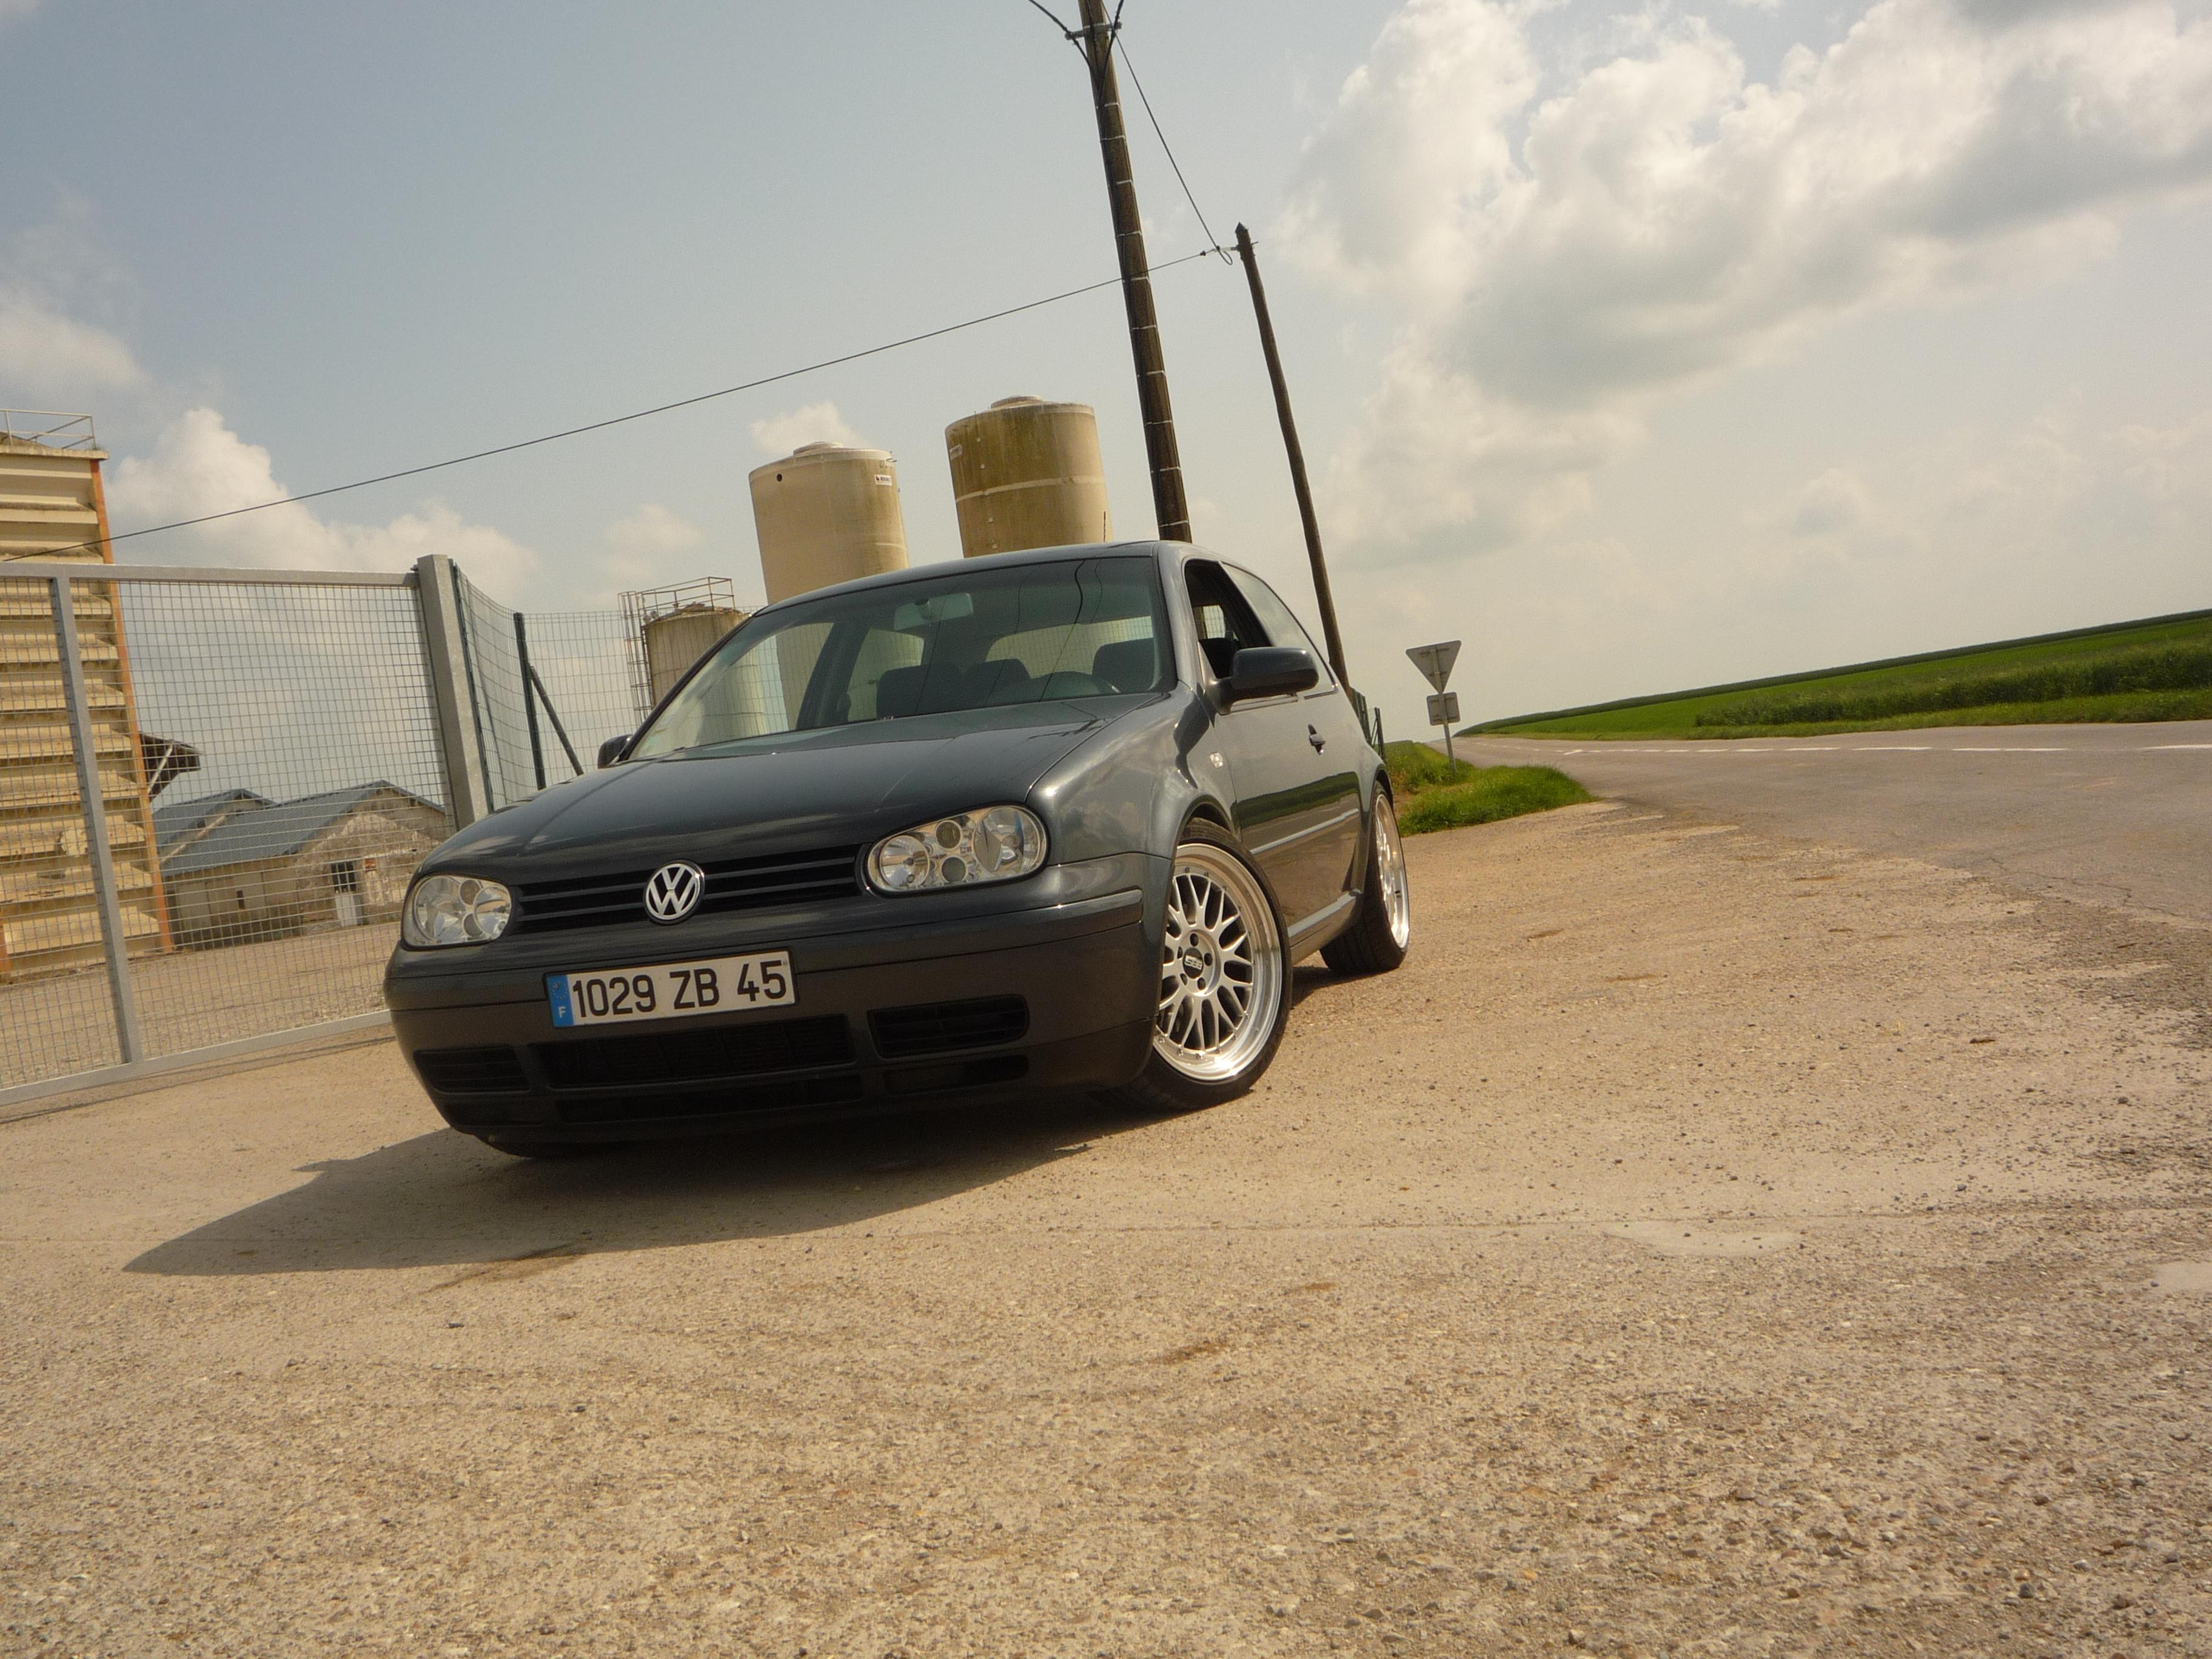 golf iv gti tdi 150 de kmao vehicule vendue garage des golf iv tdi 150 page 20 forum. Black Bedroom Furniture Sets. Home Design Ideas